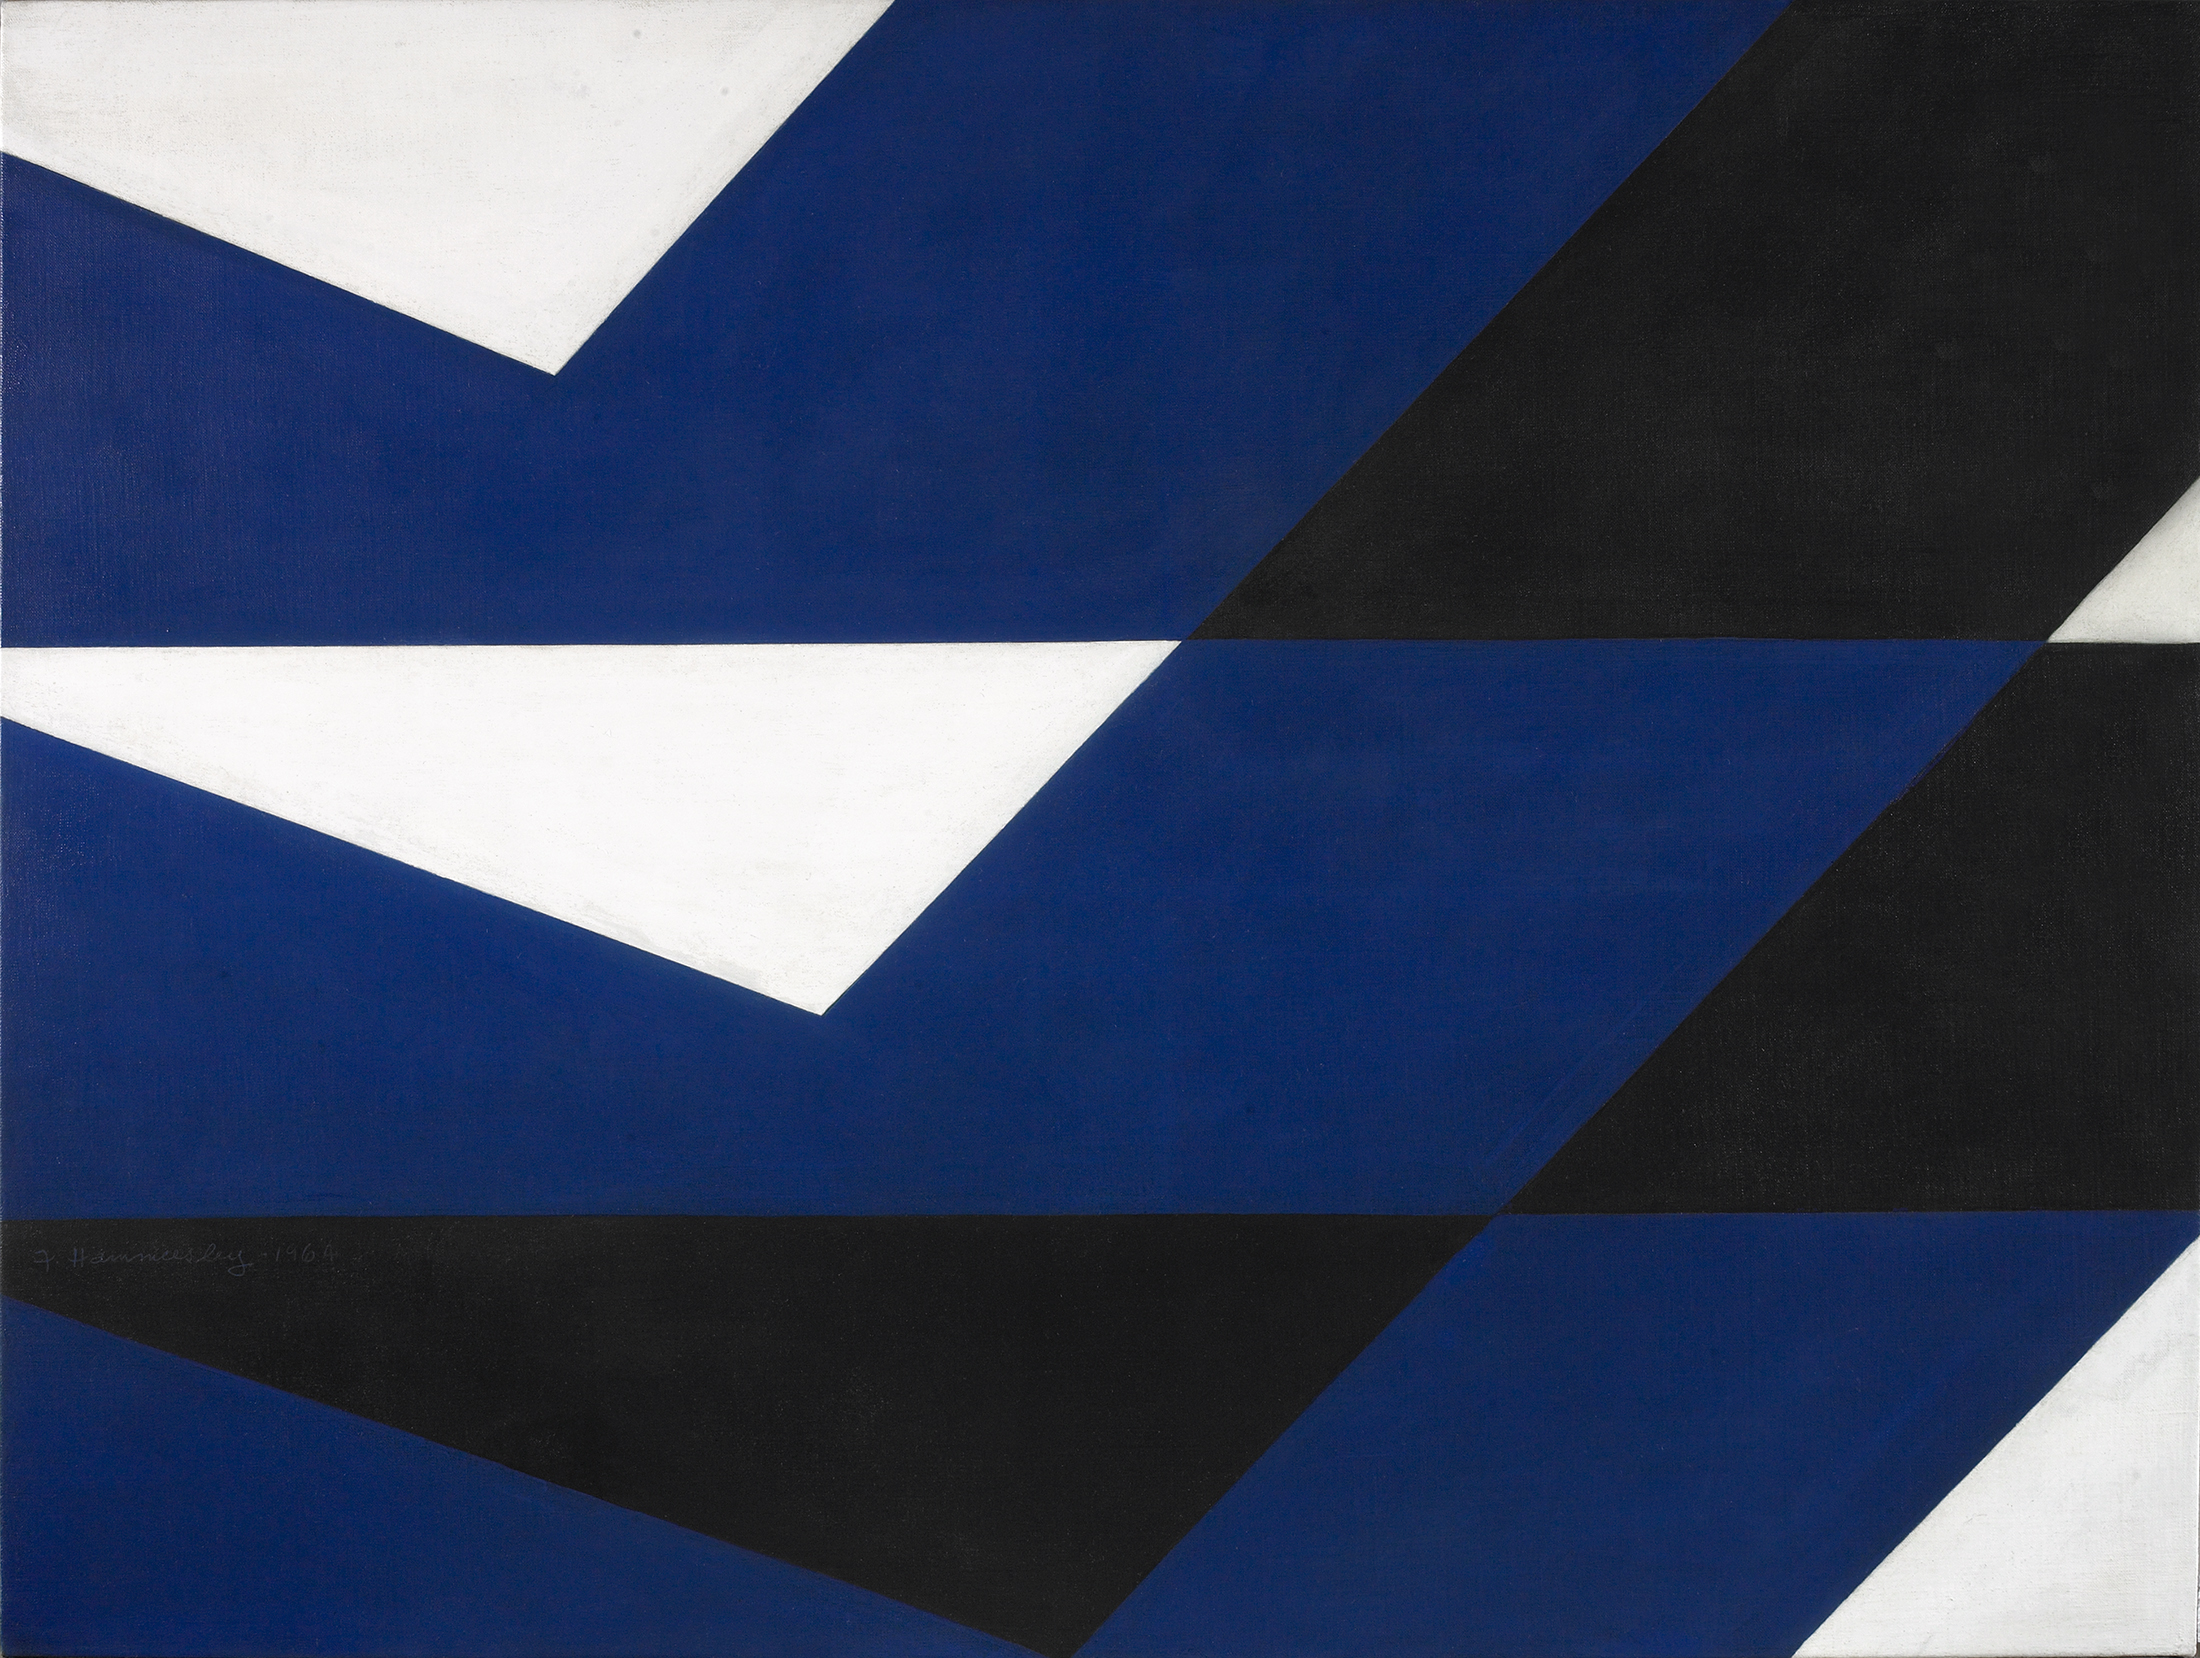 Frederick Hammersley ,  Right Slide, 1964 , oil on canvas, 38 x 50 1/2 inches